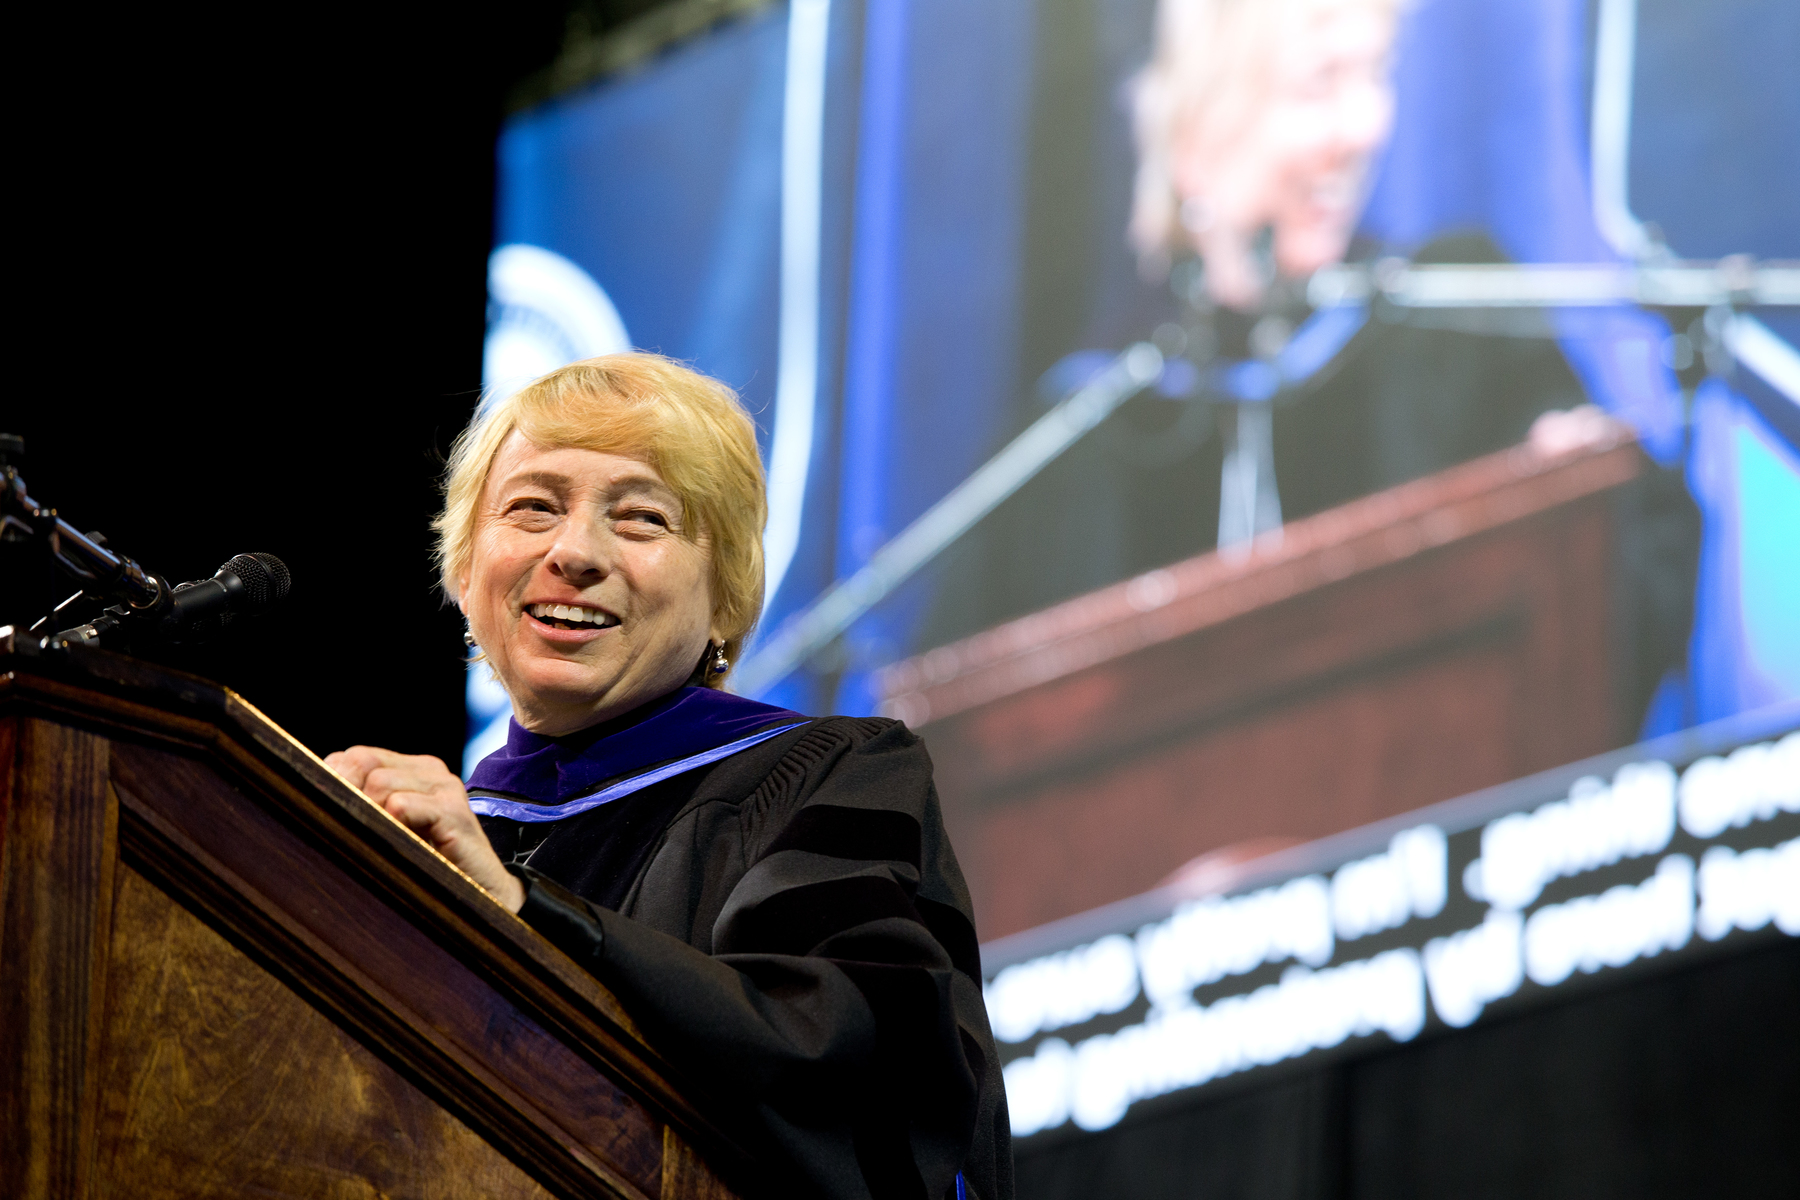 Maine's first female governor Janet Mills address the crowd at the U N E commencement ceremony in 2019